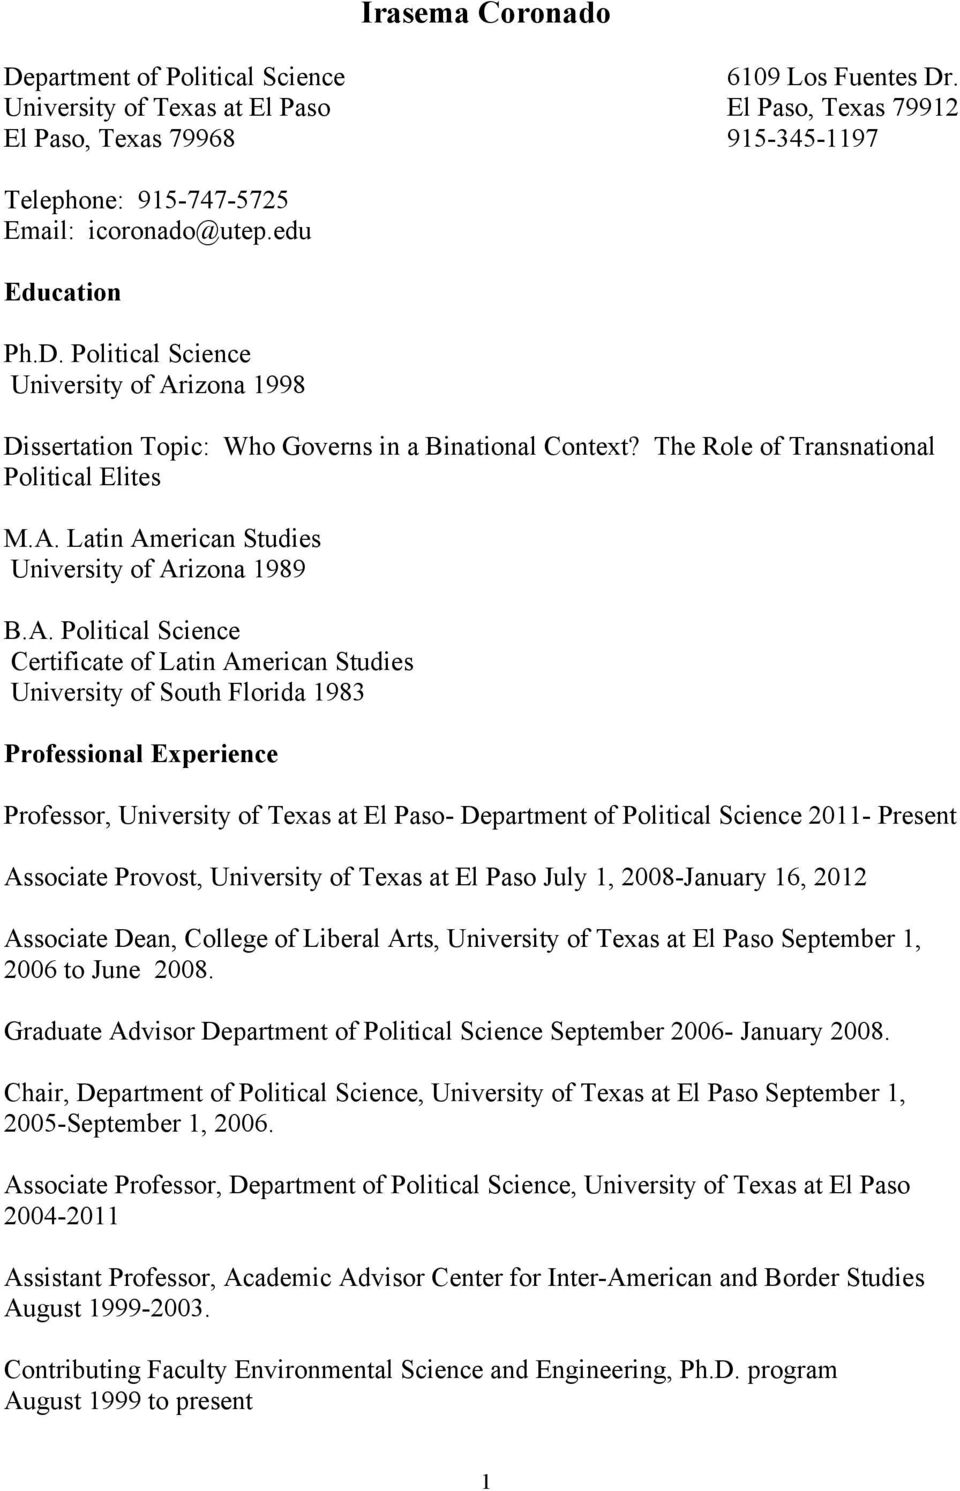 Political Science University of Arizona 1998 Dissertation Topic: Who Governs in a Binational Context? The Role of Transnational Political Elites M.A. Latin American Studies University of Arizona 1989 B.